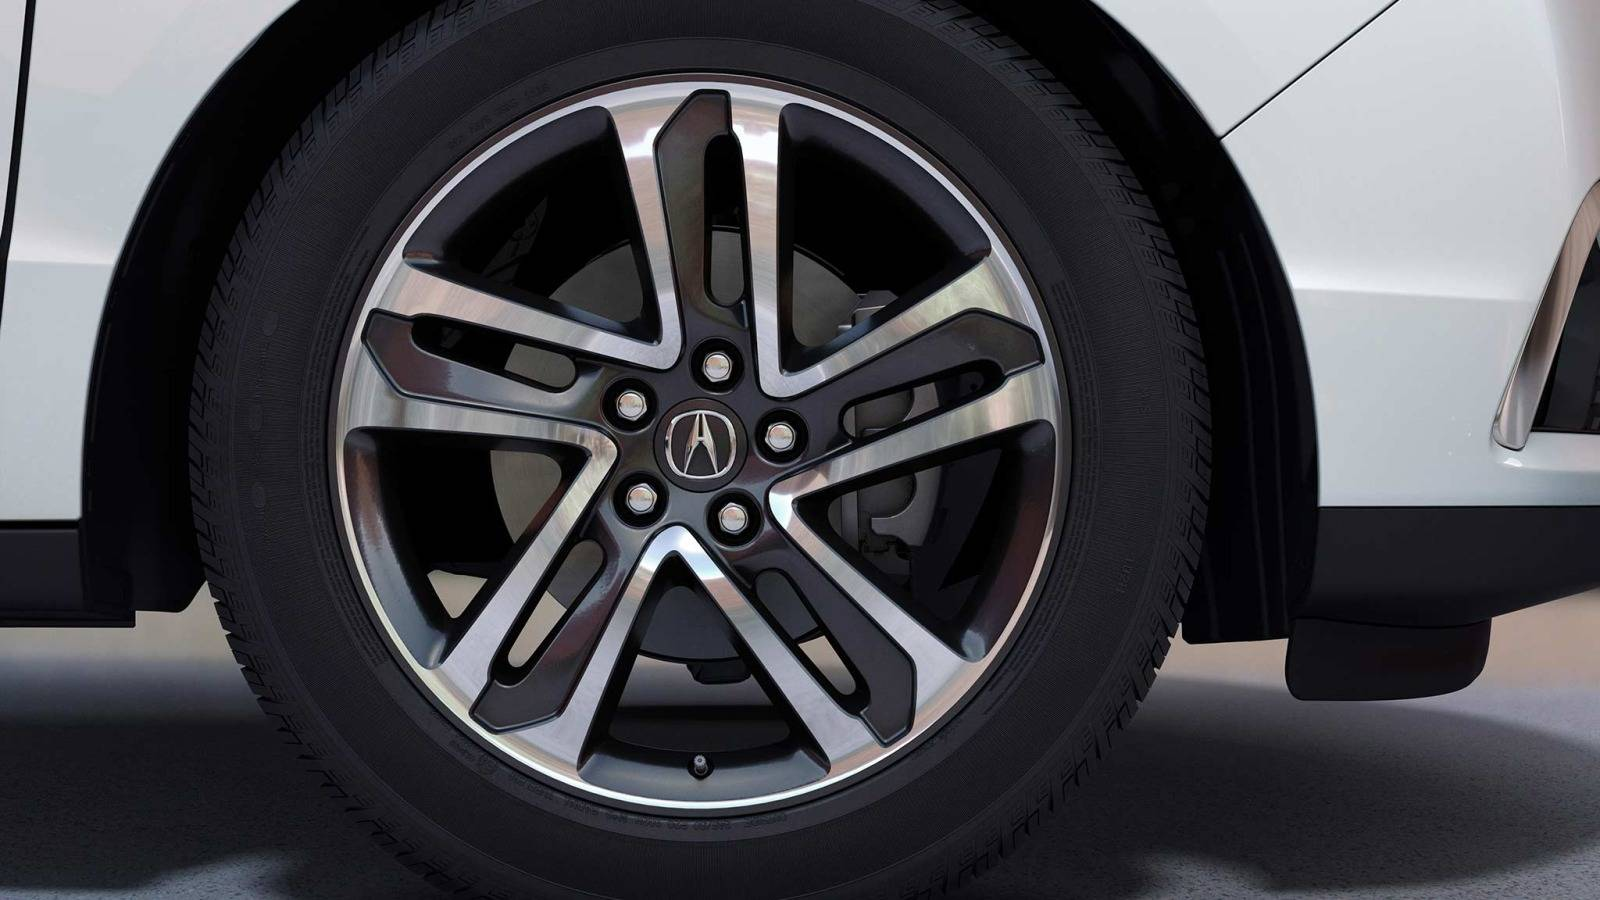 acura parts accessories offers